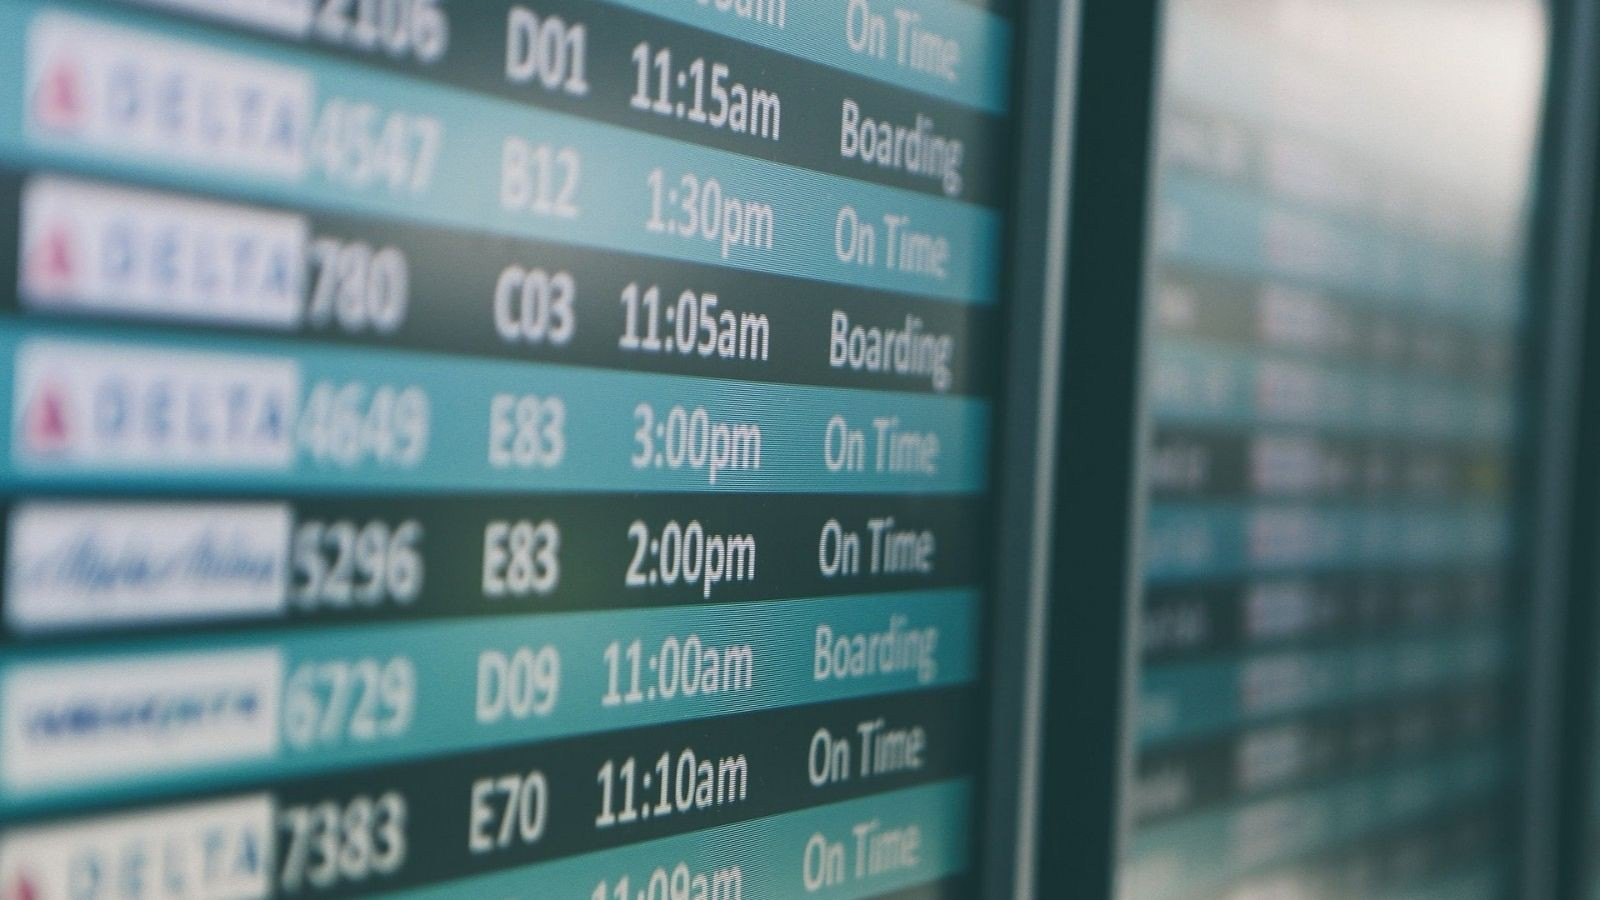 Rebooking airline tickets: How to sort out various vouchers and credit